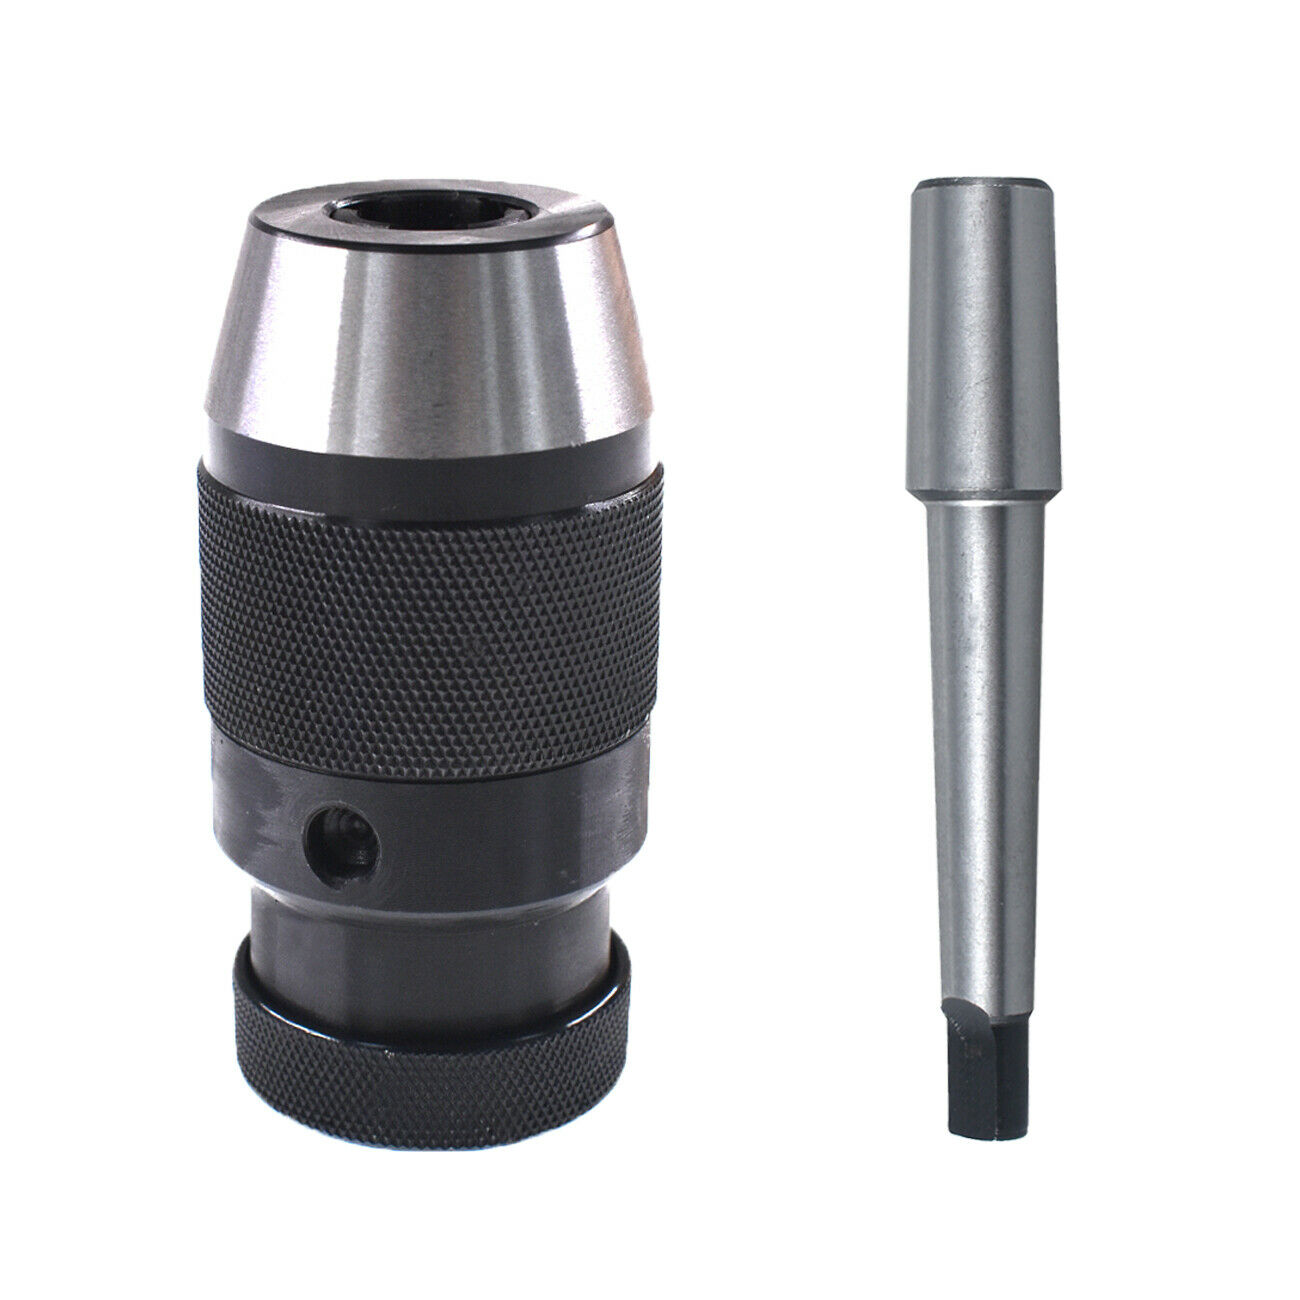 Machine Drill Chuck Keyless Replacement Morse Taper MT1-B16 Alloy+45 Steel Black+silver Lathes Boring Tools Milling